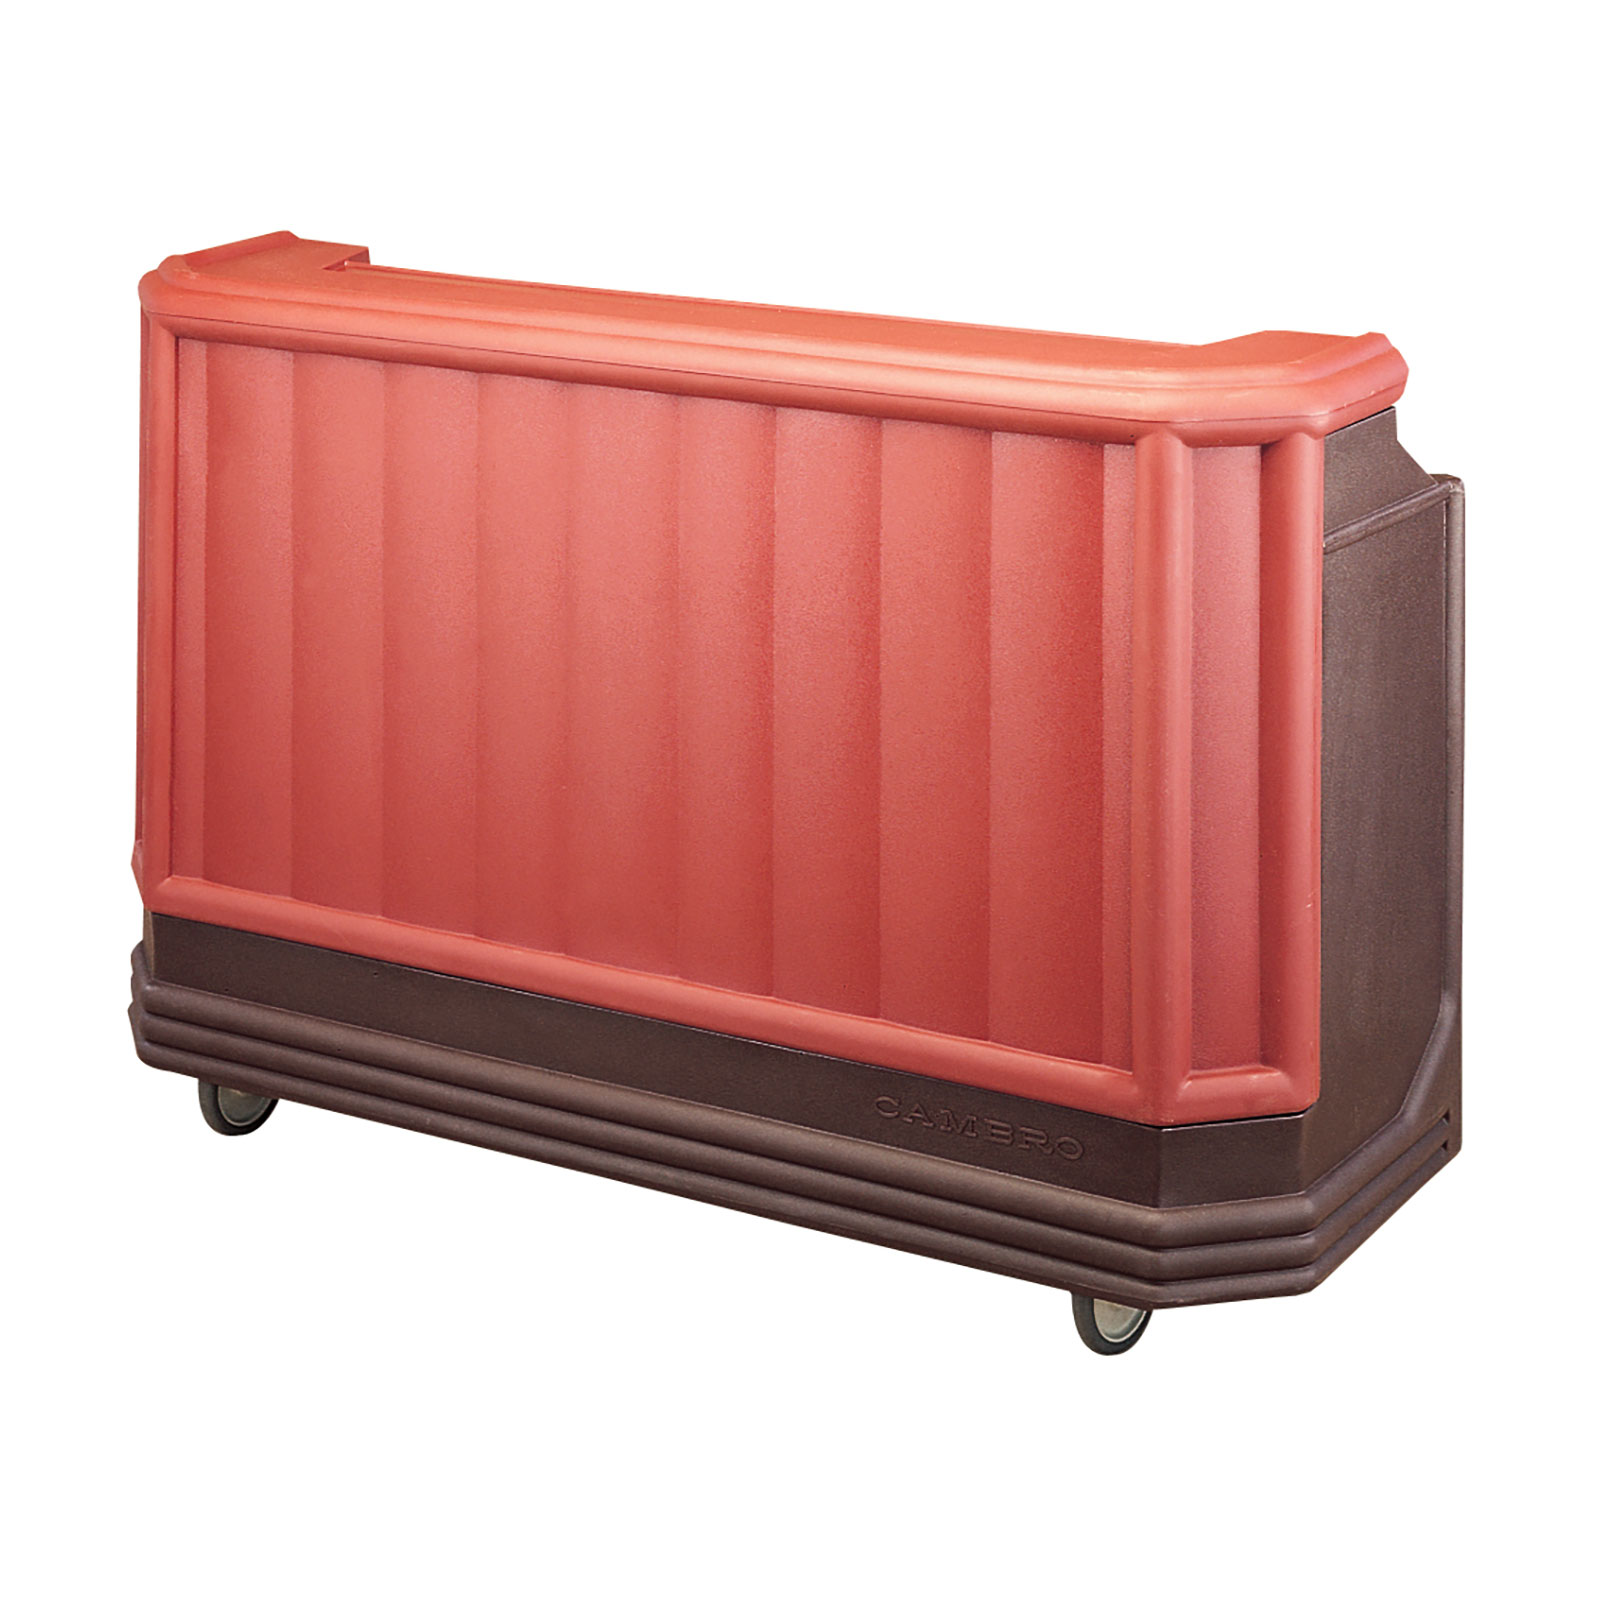 Cambro BAR730189 portable bars